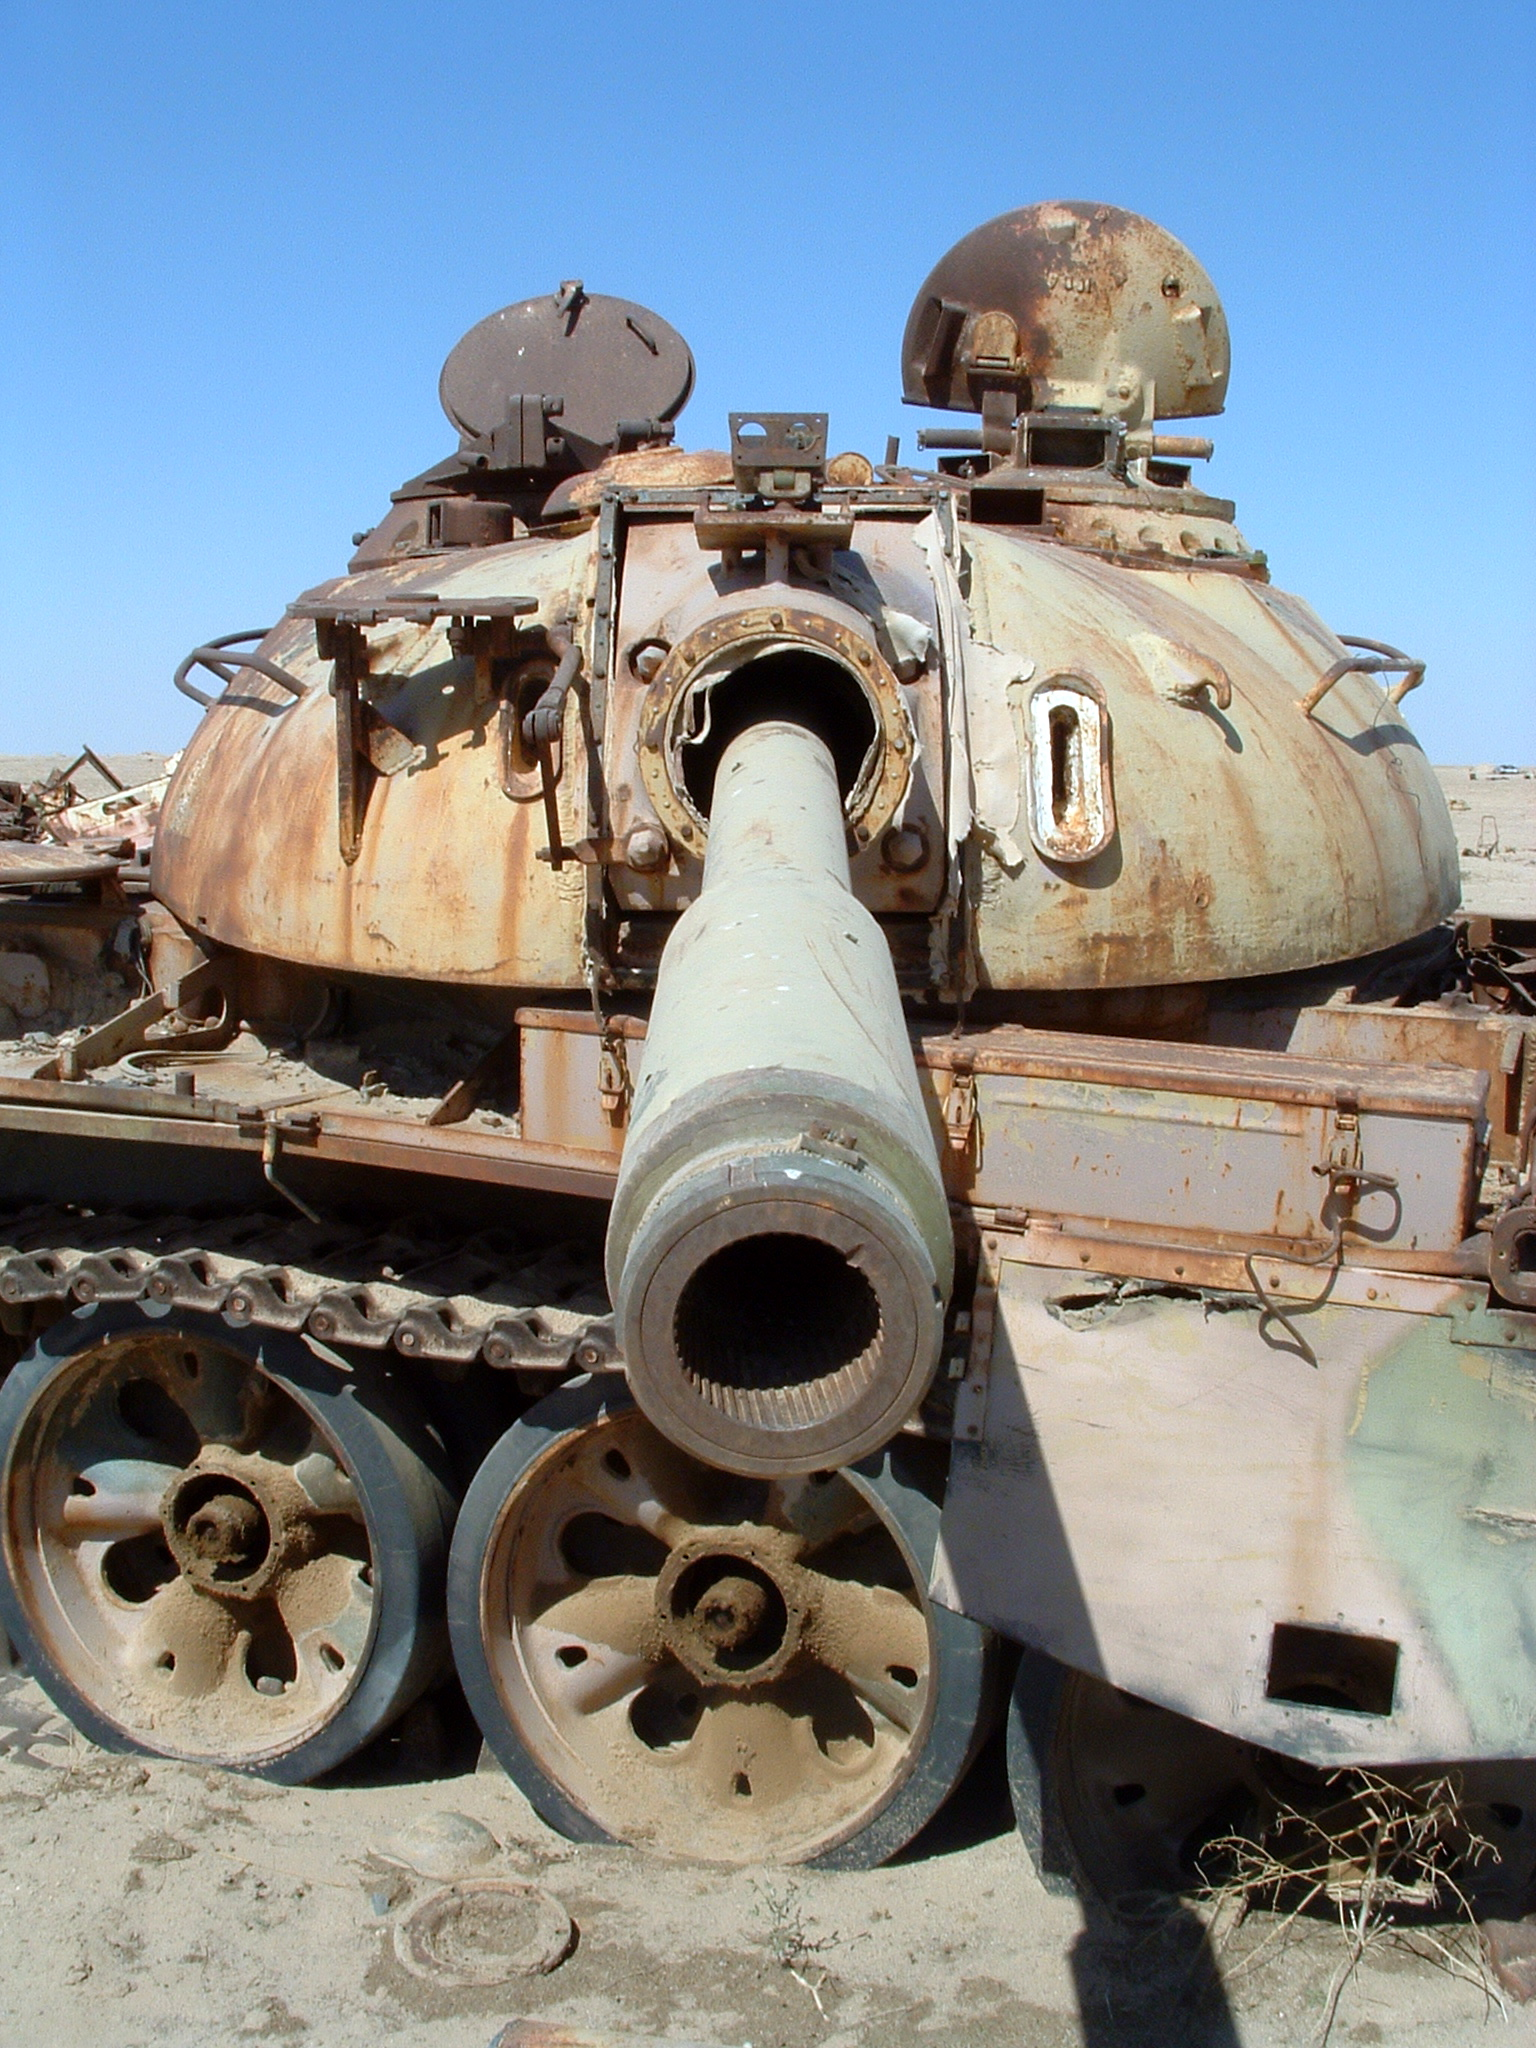 Rusting_tank_at_the_Highway_of_Death_in_Iraq.jpg